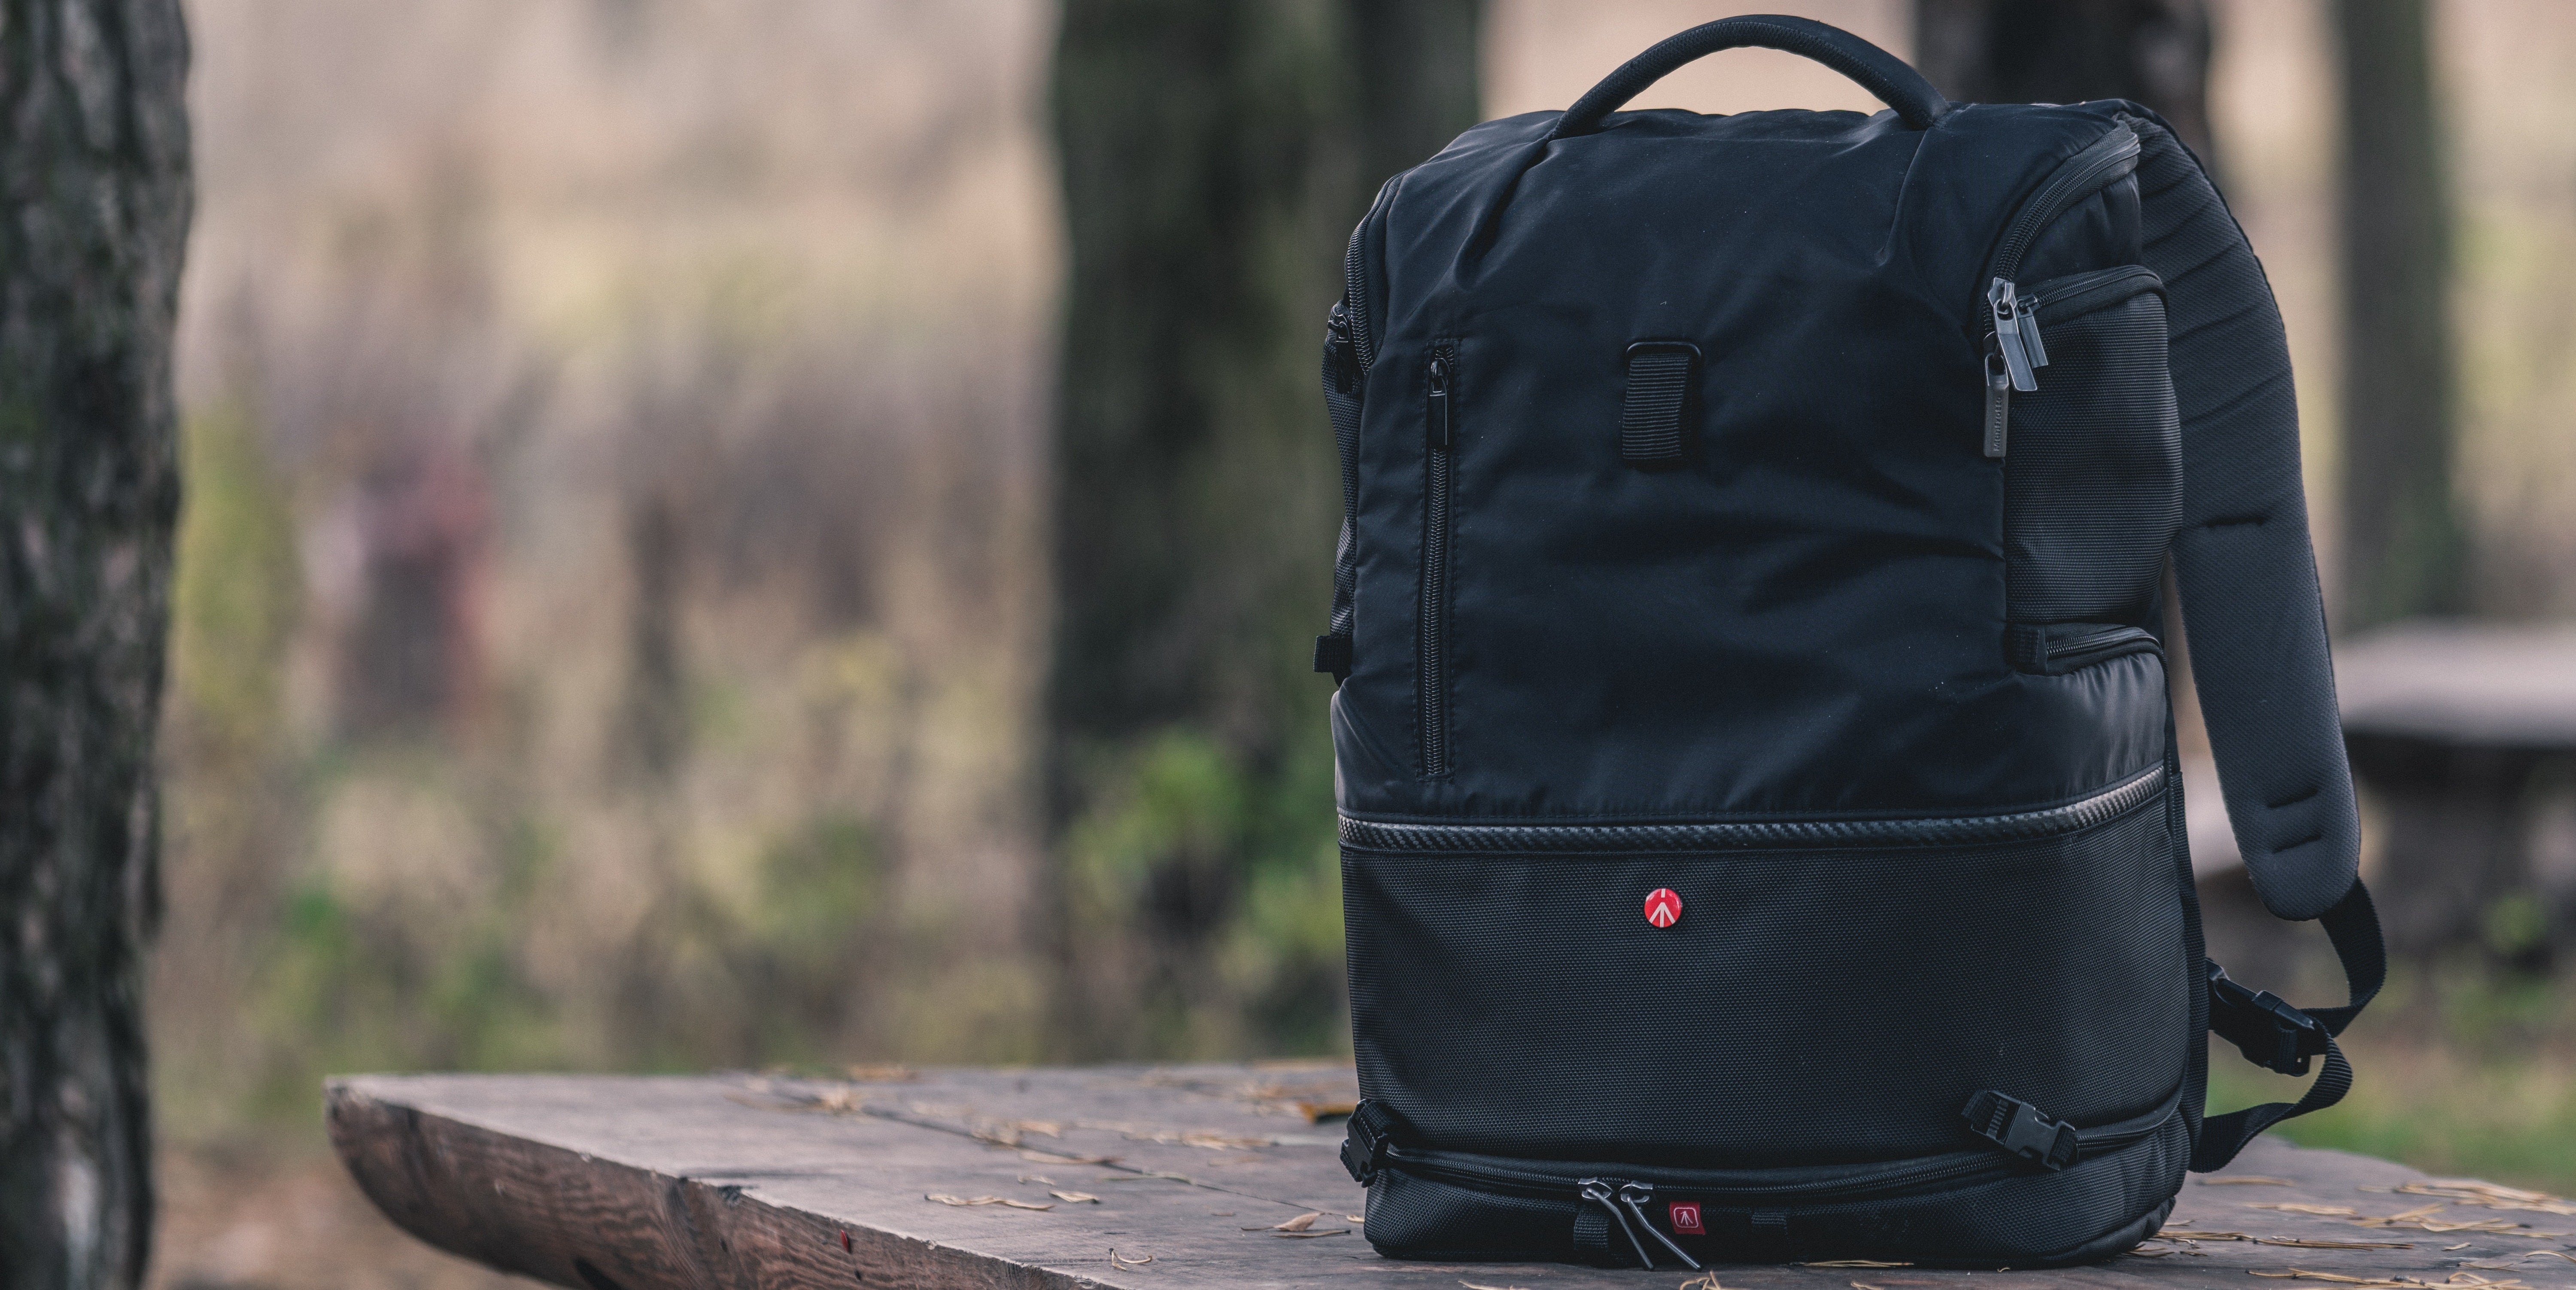 The Best Compact Backpacks That Are Selling Out Right Now